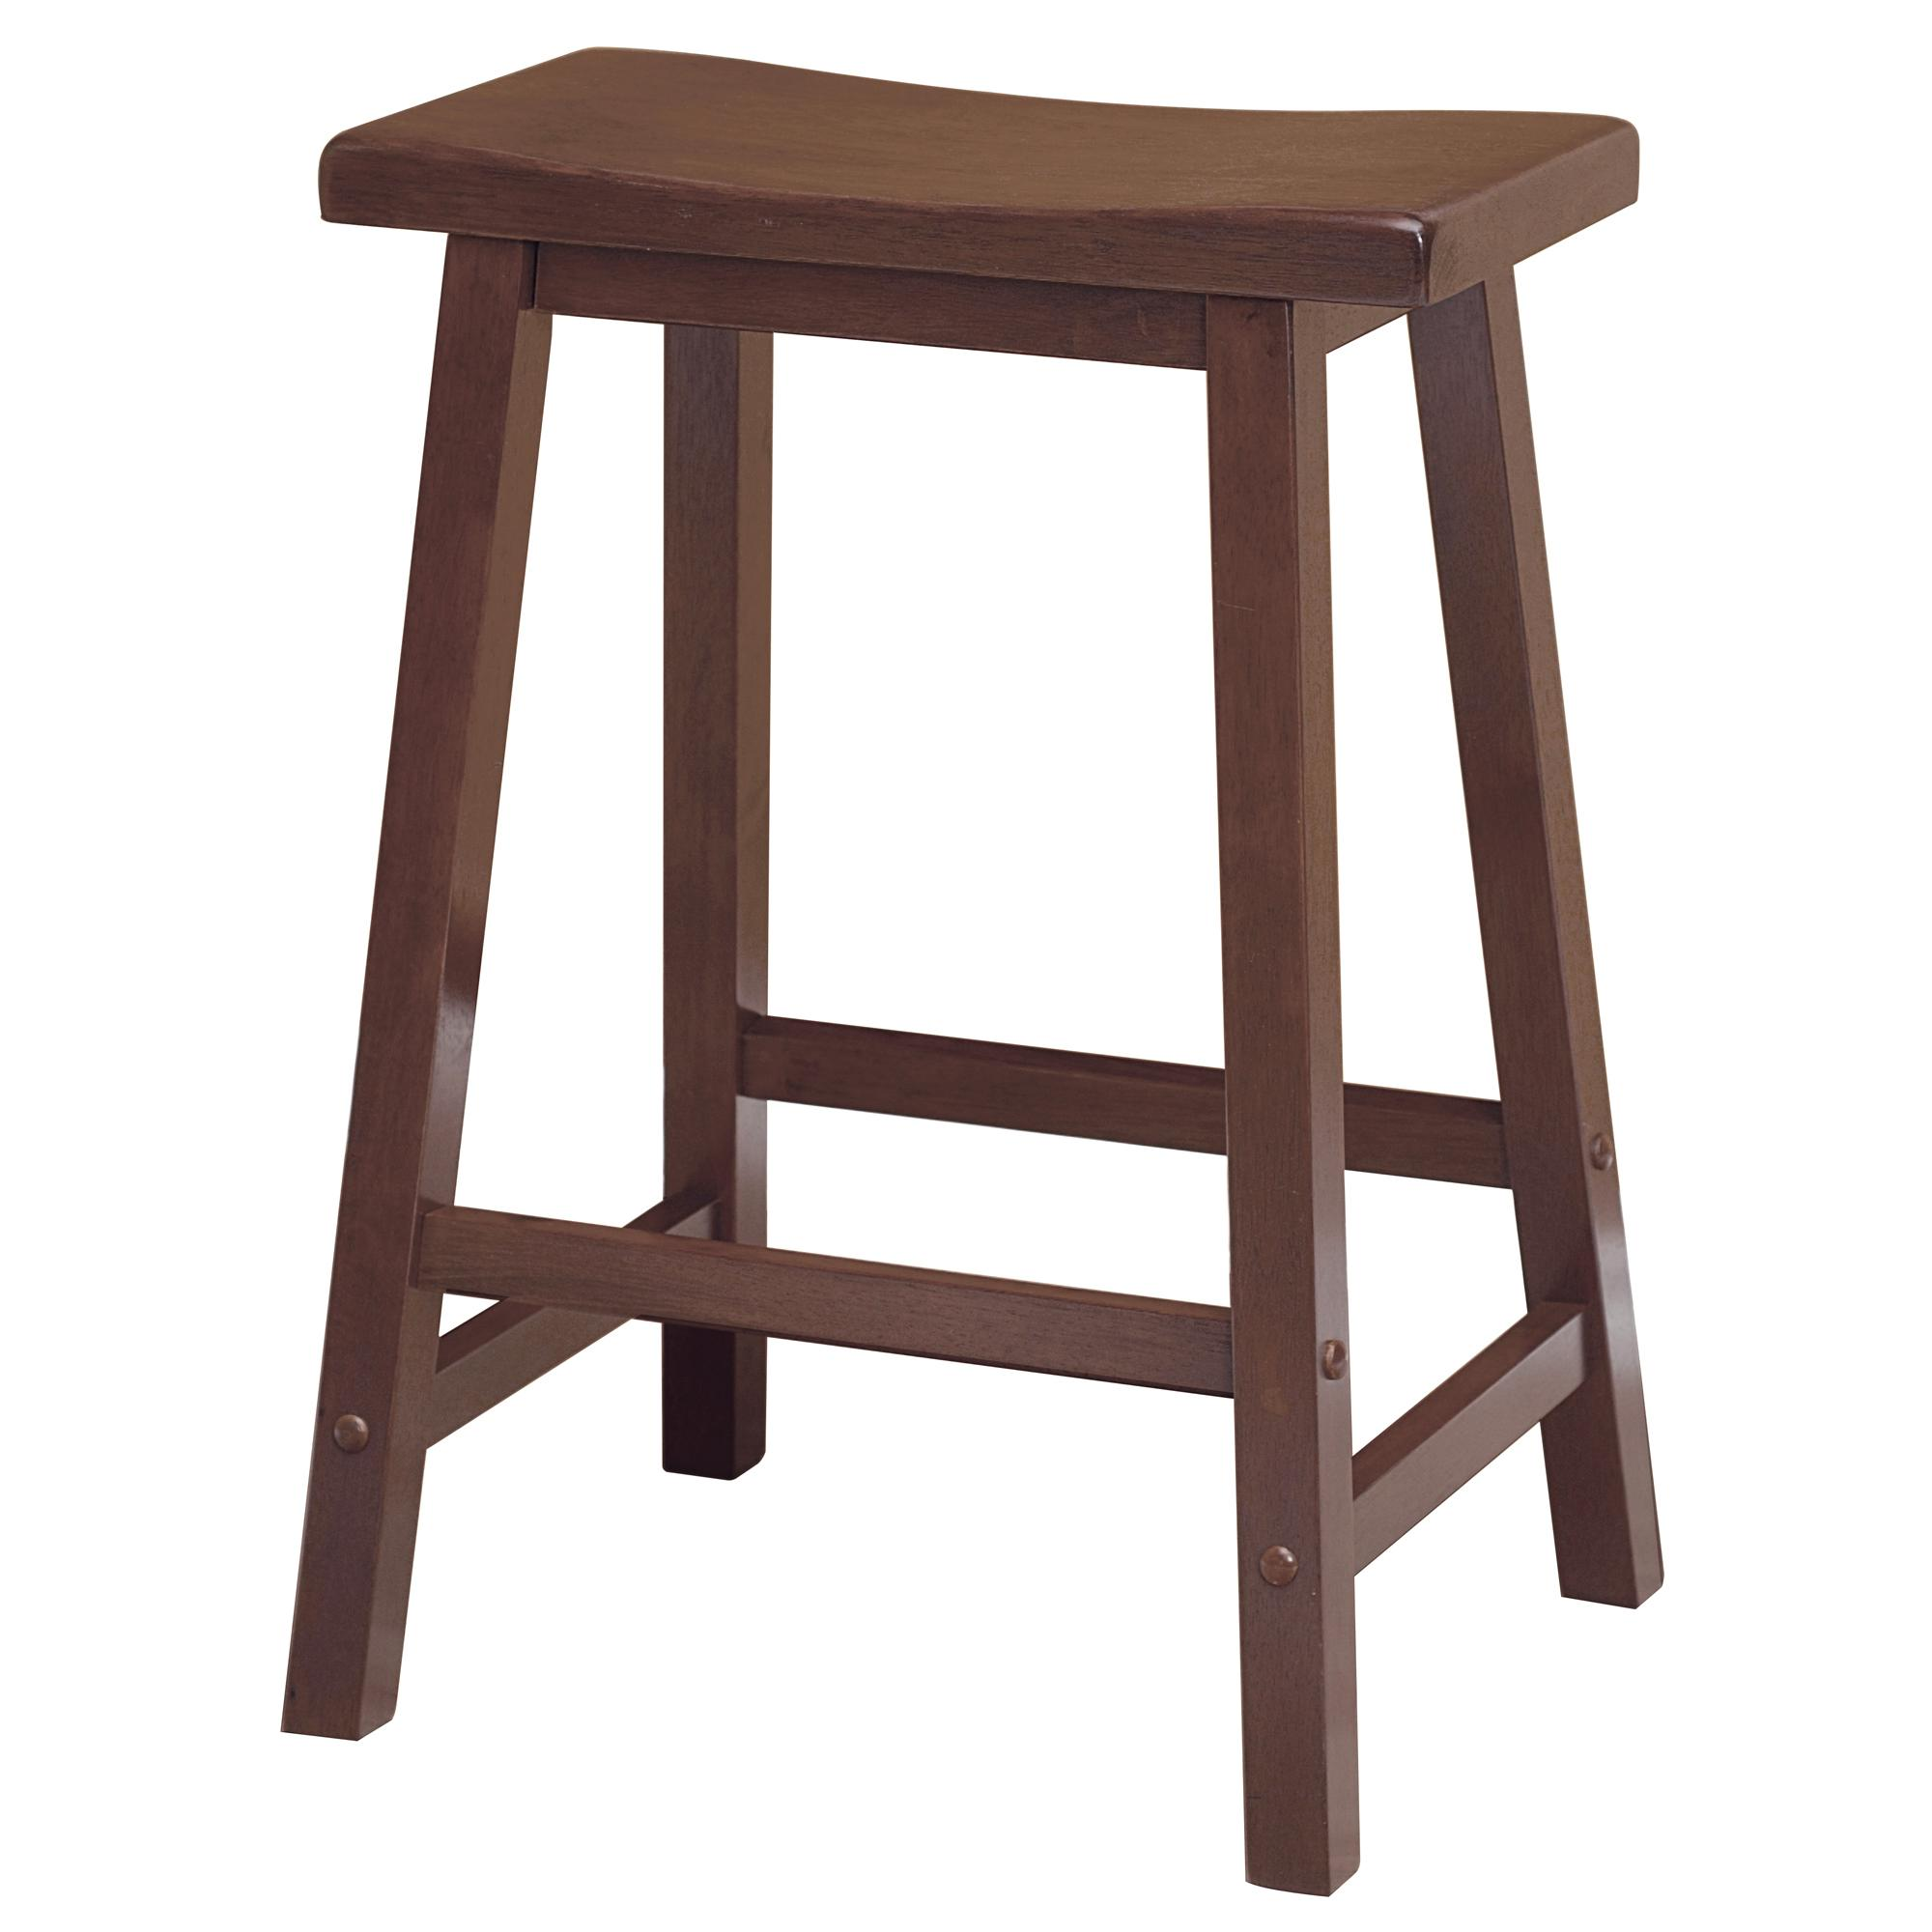 View larger  sc 1 st  Amazon.com & Amazon.com: Winsome Saddle Seat 24-Inch Counter Stool Walnut ... islam-shia.org